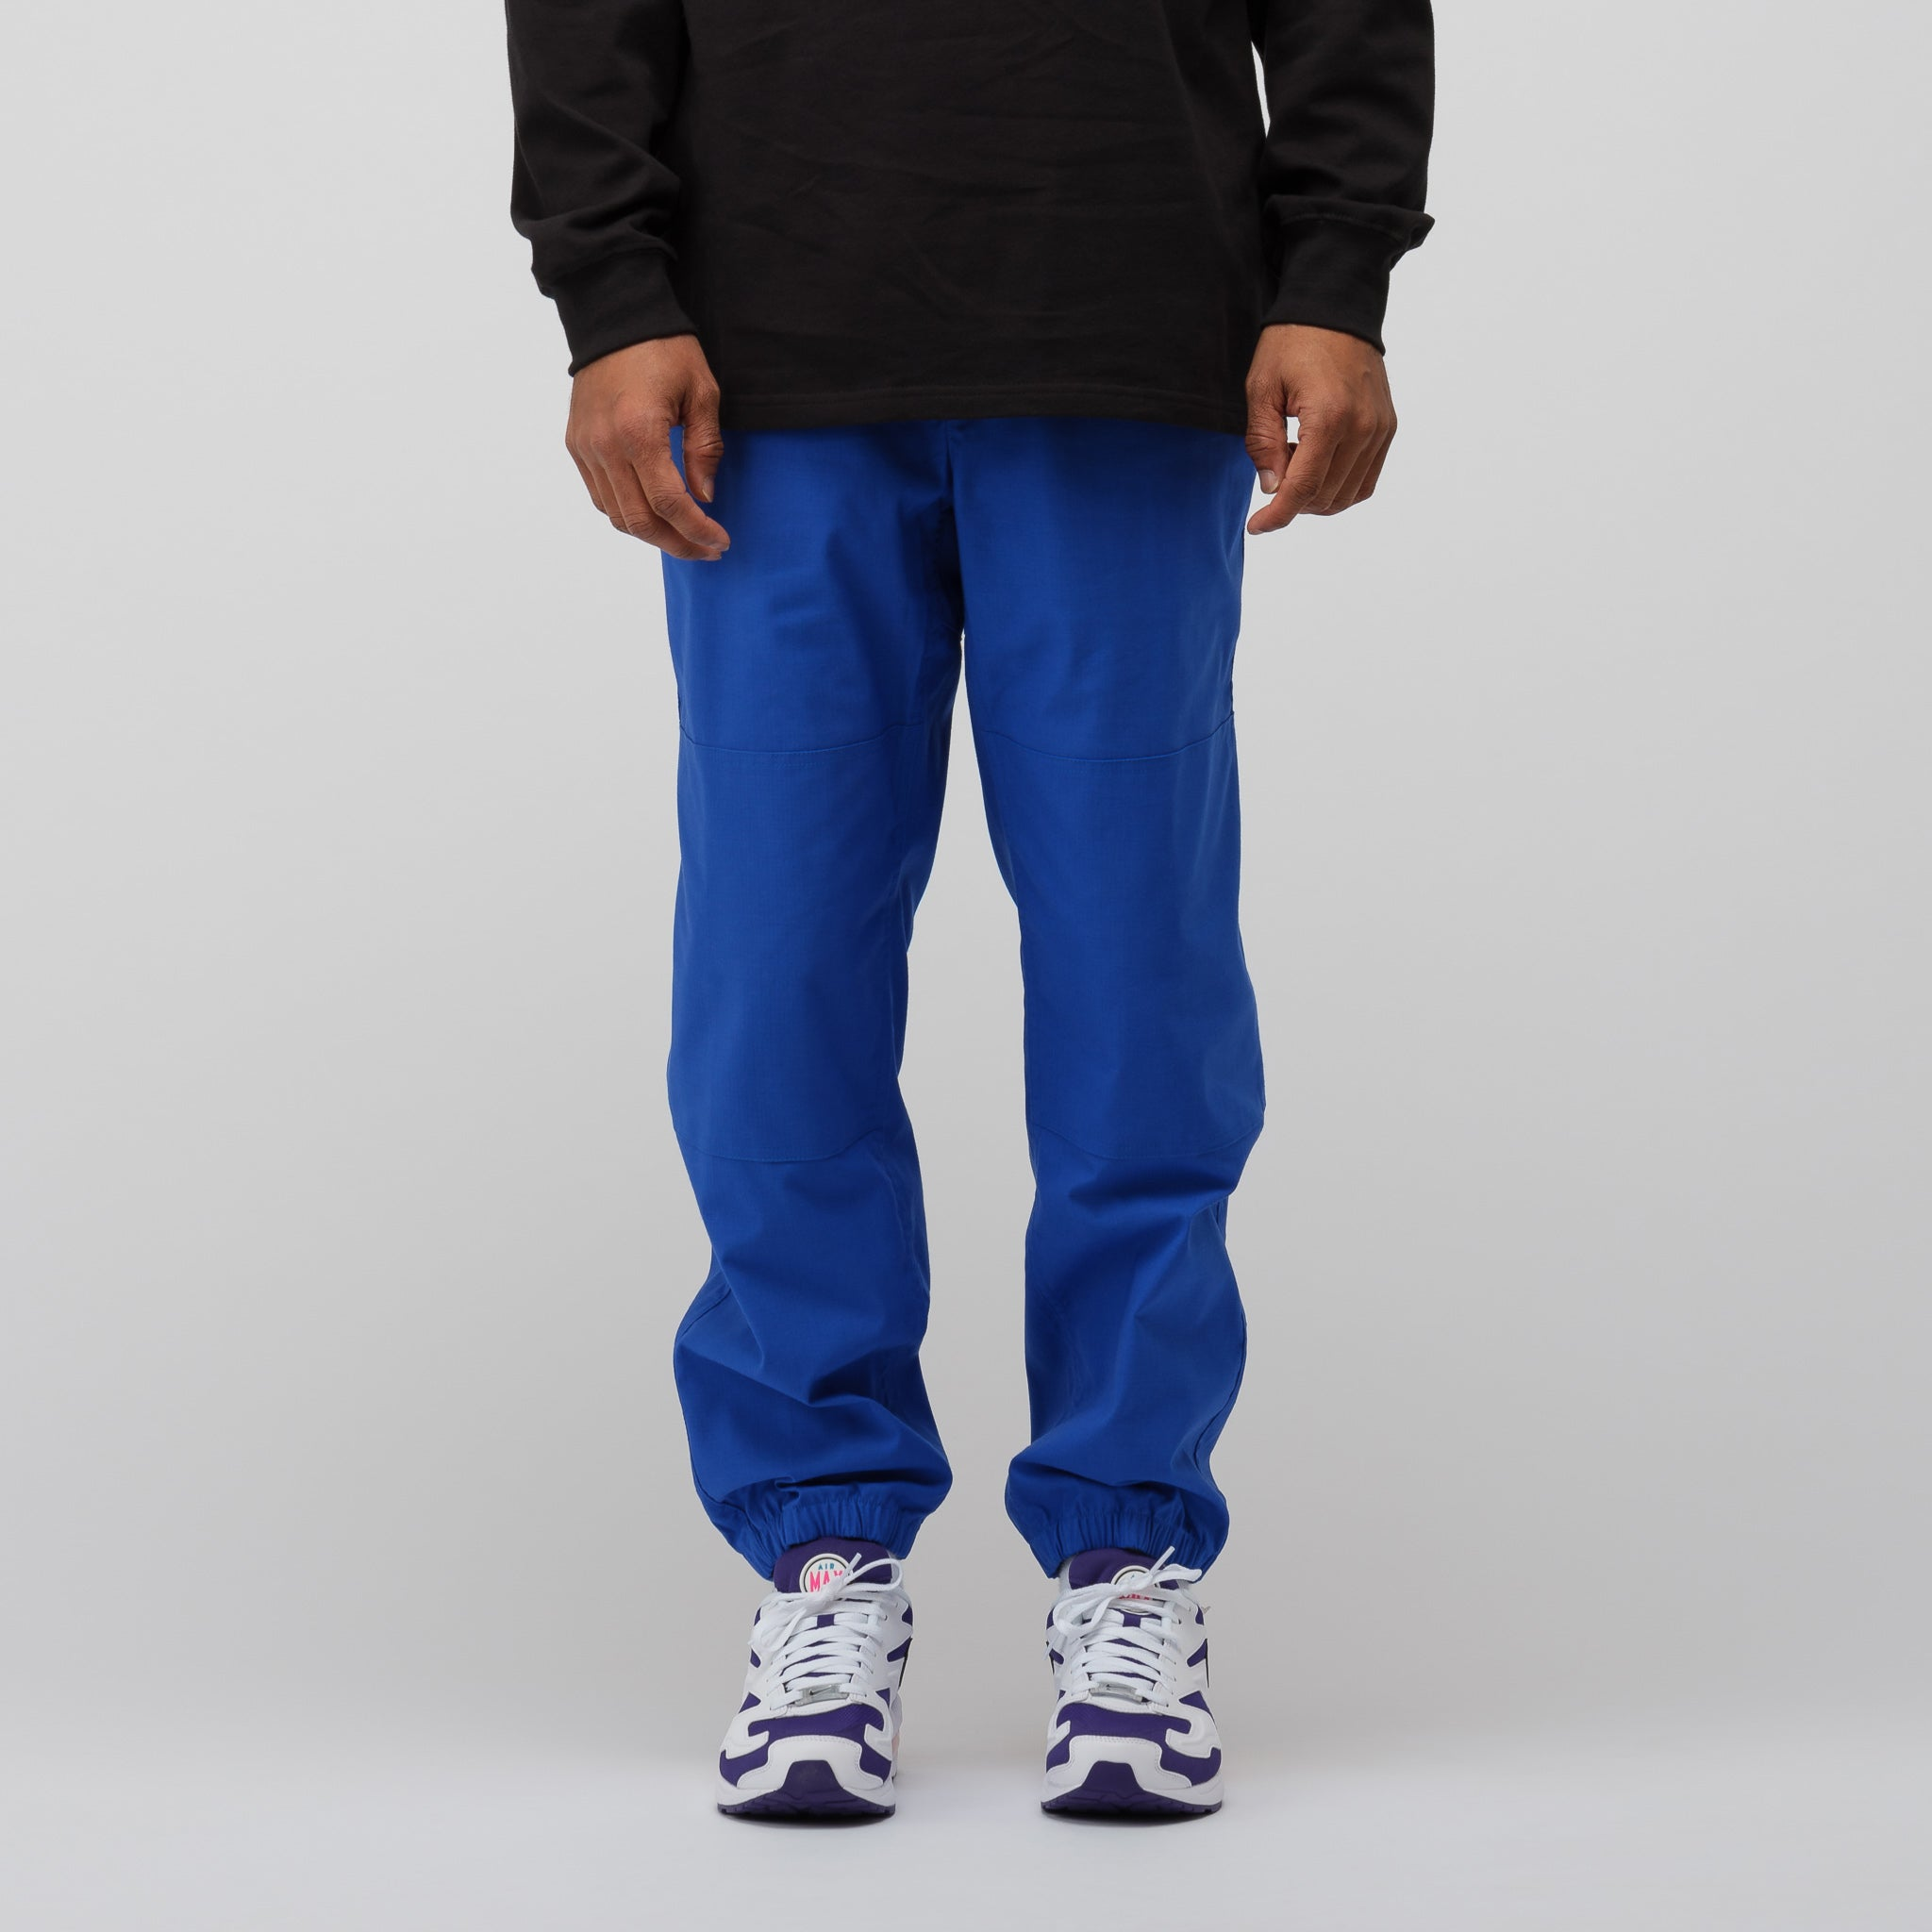 promo code d2bad f4f9c ACG Trail Pants in Royal Blue Pink · NikeLab